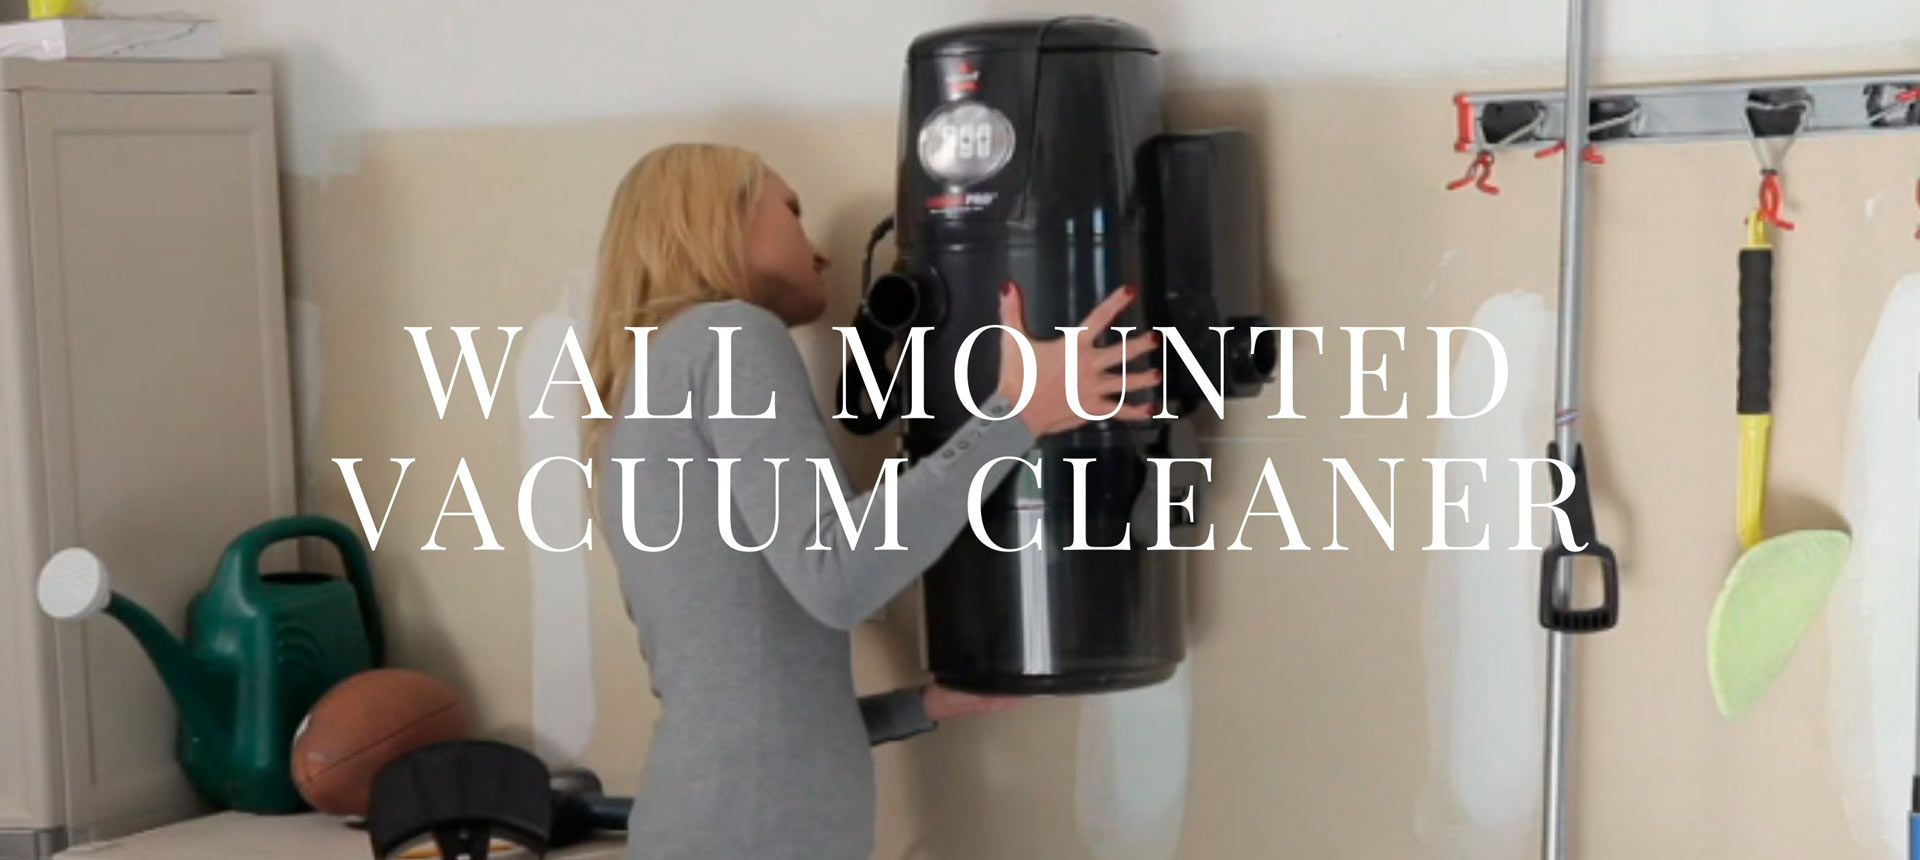 Wall Mounted Vacuum Cleaner